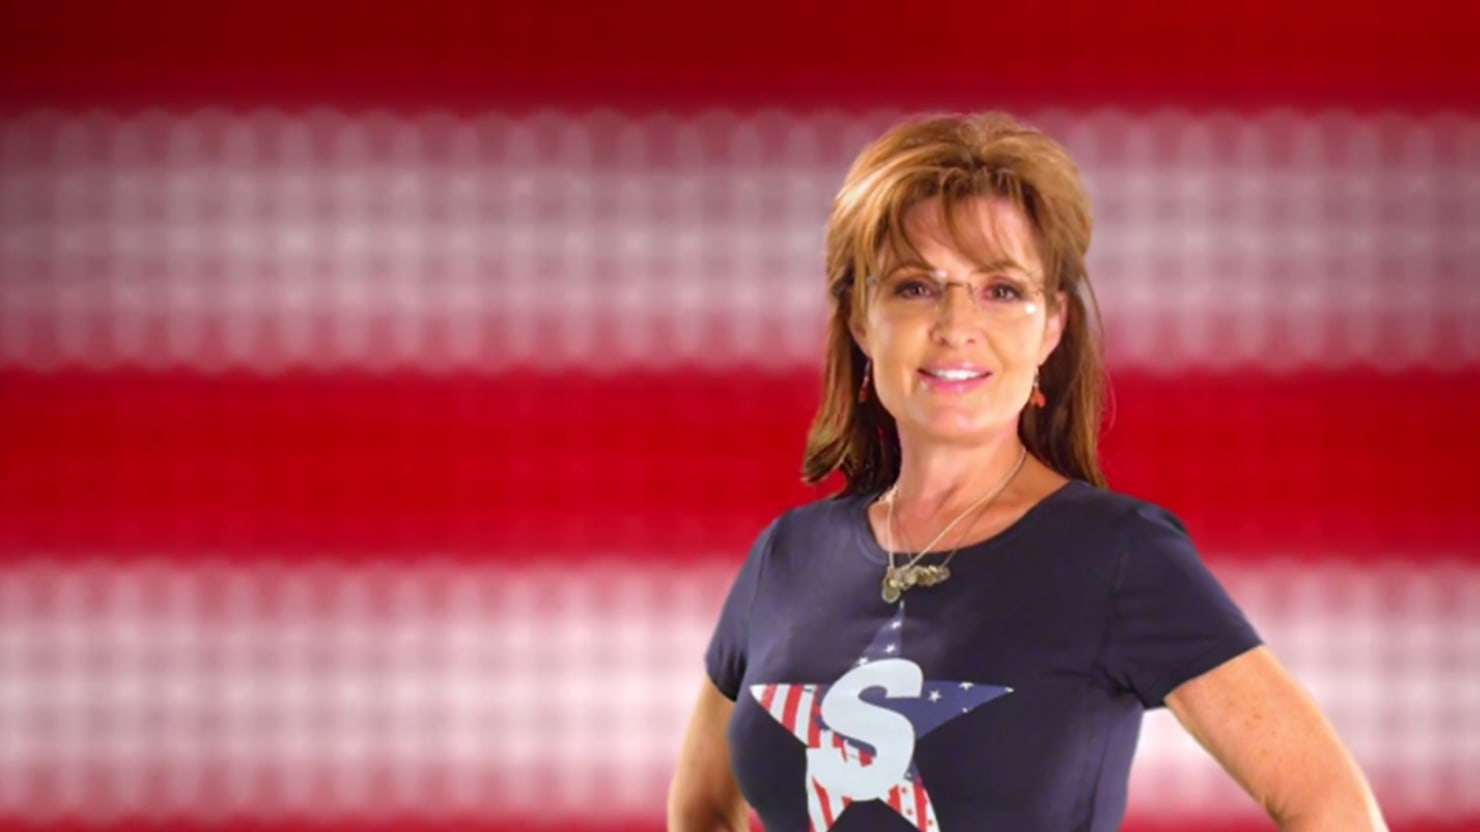 Former reality star sarah palin returns to television sarah palin released the promo for her new reality television show thursday it features electric guitars and a lot of flags altavistaventures Images